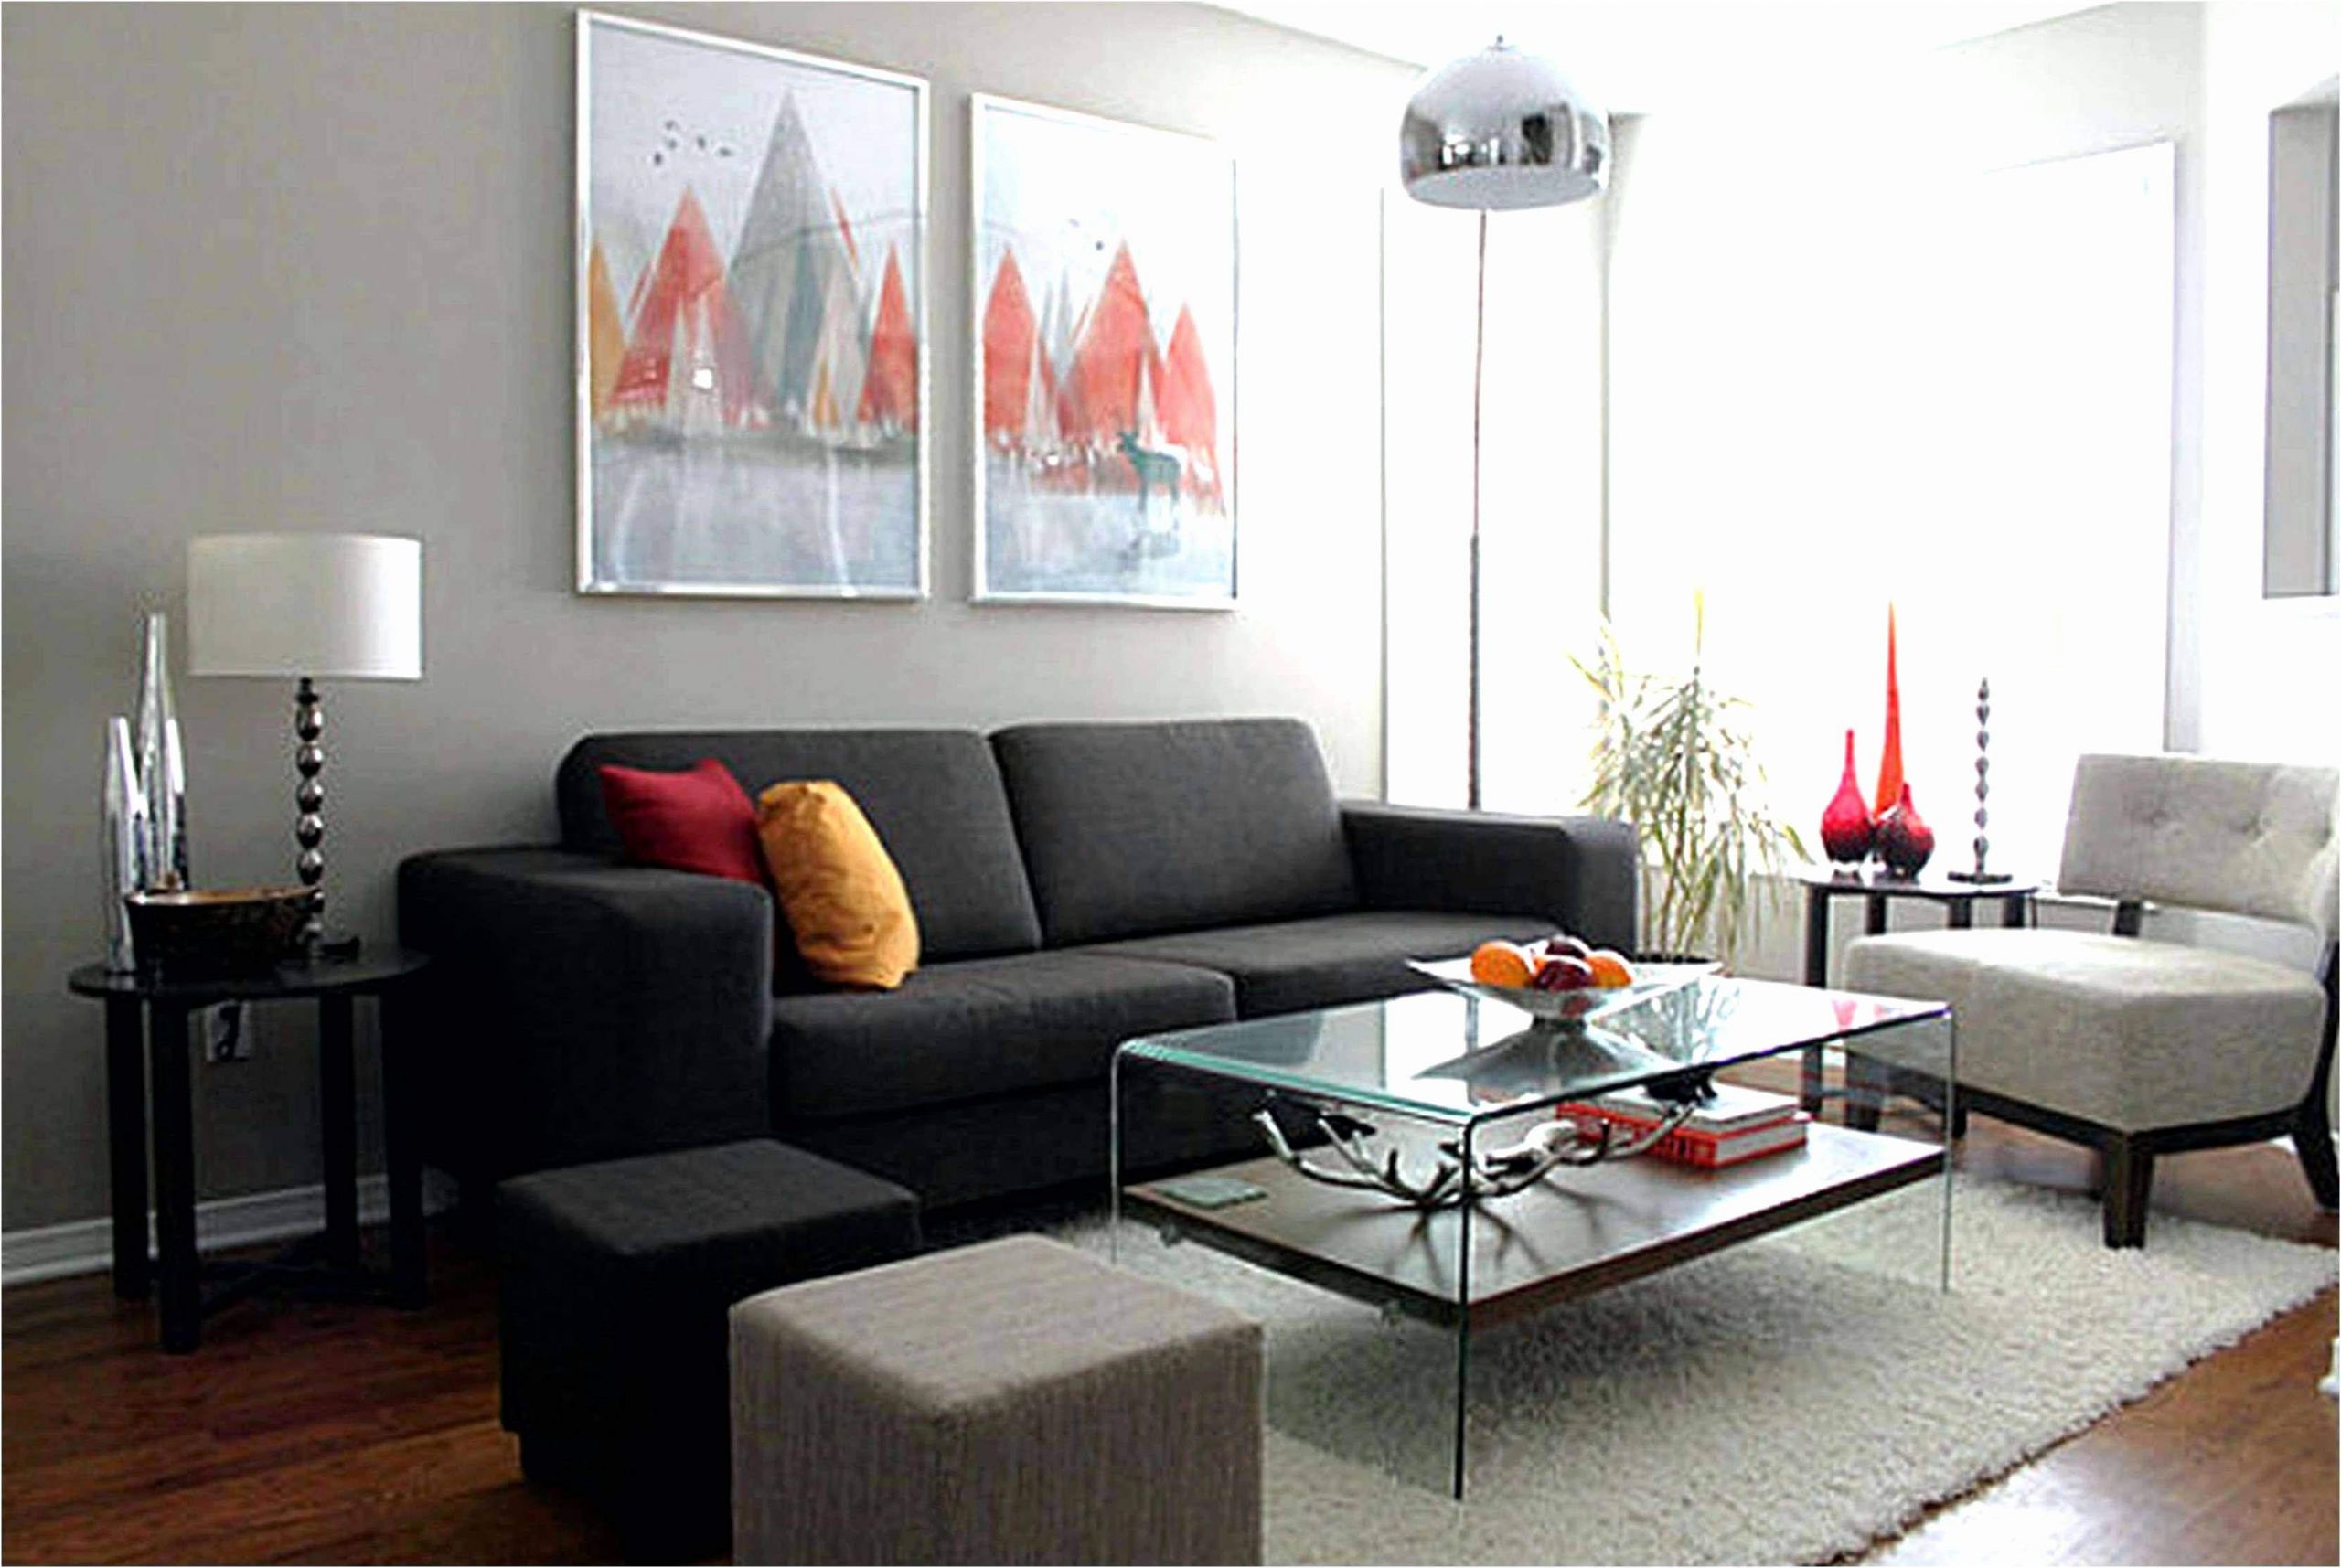 wohnzimmer couch ideen best of genial couch rotzuhause schonheiten zuhause schonheiten of wohnzimmer couch ideen